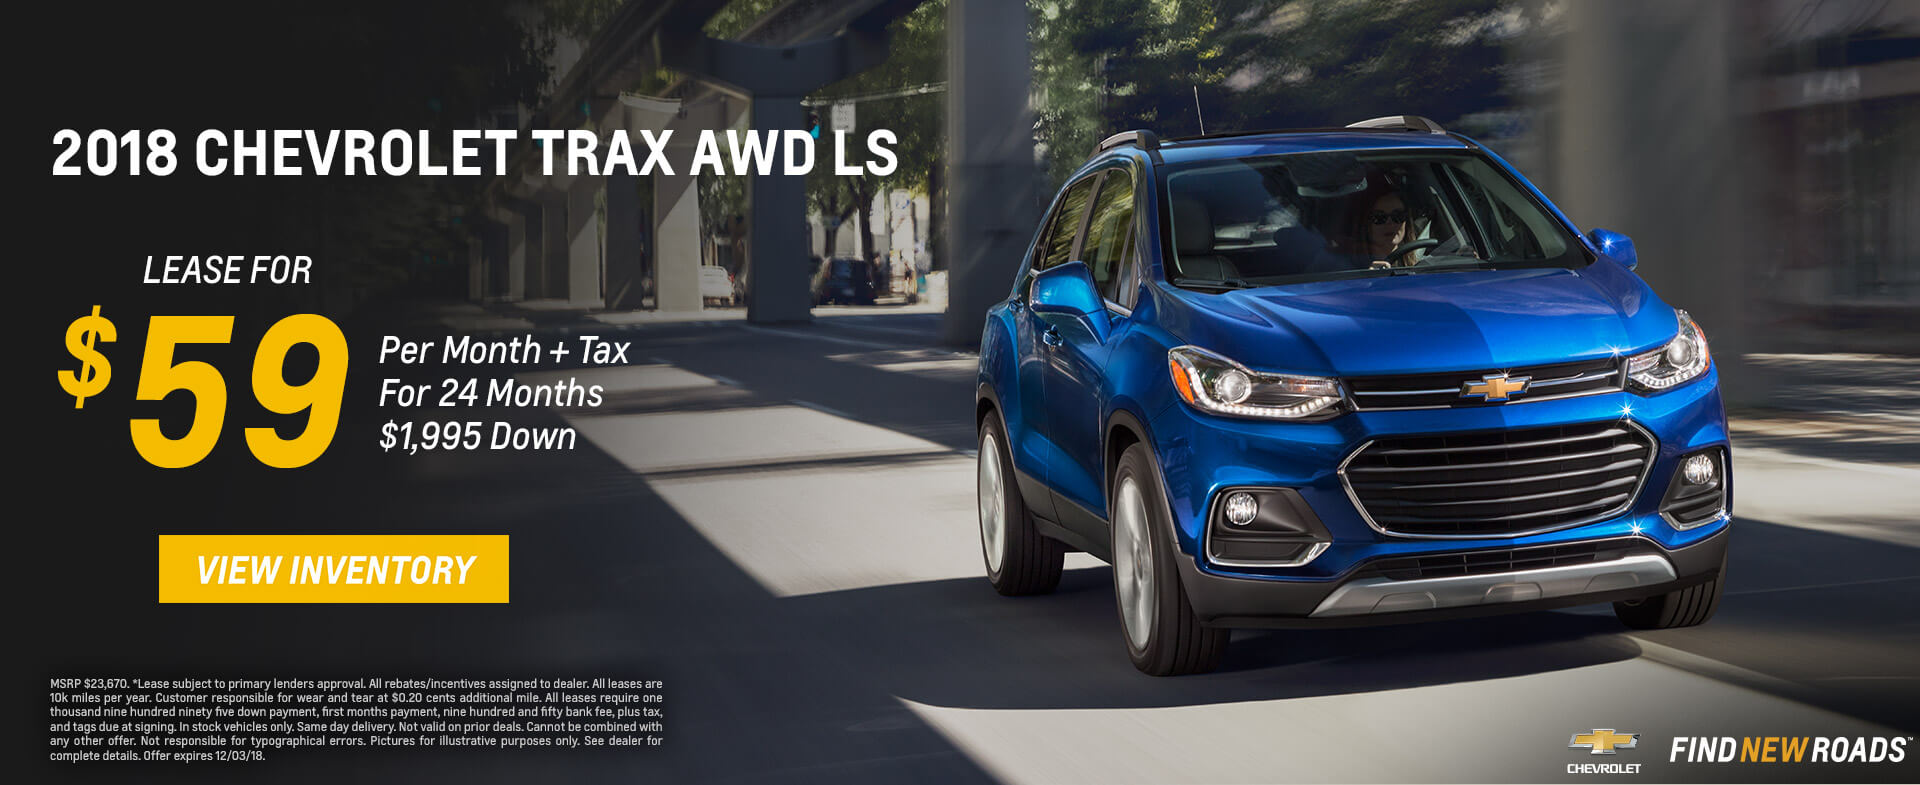 Chevrolet Trax $59 Lease